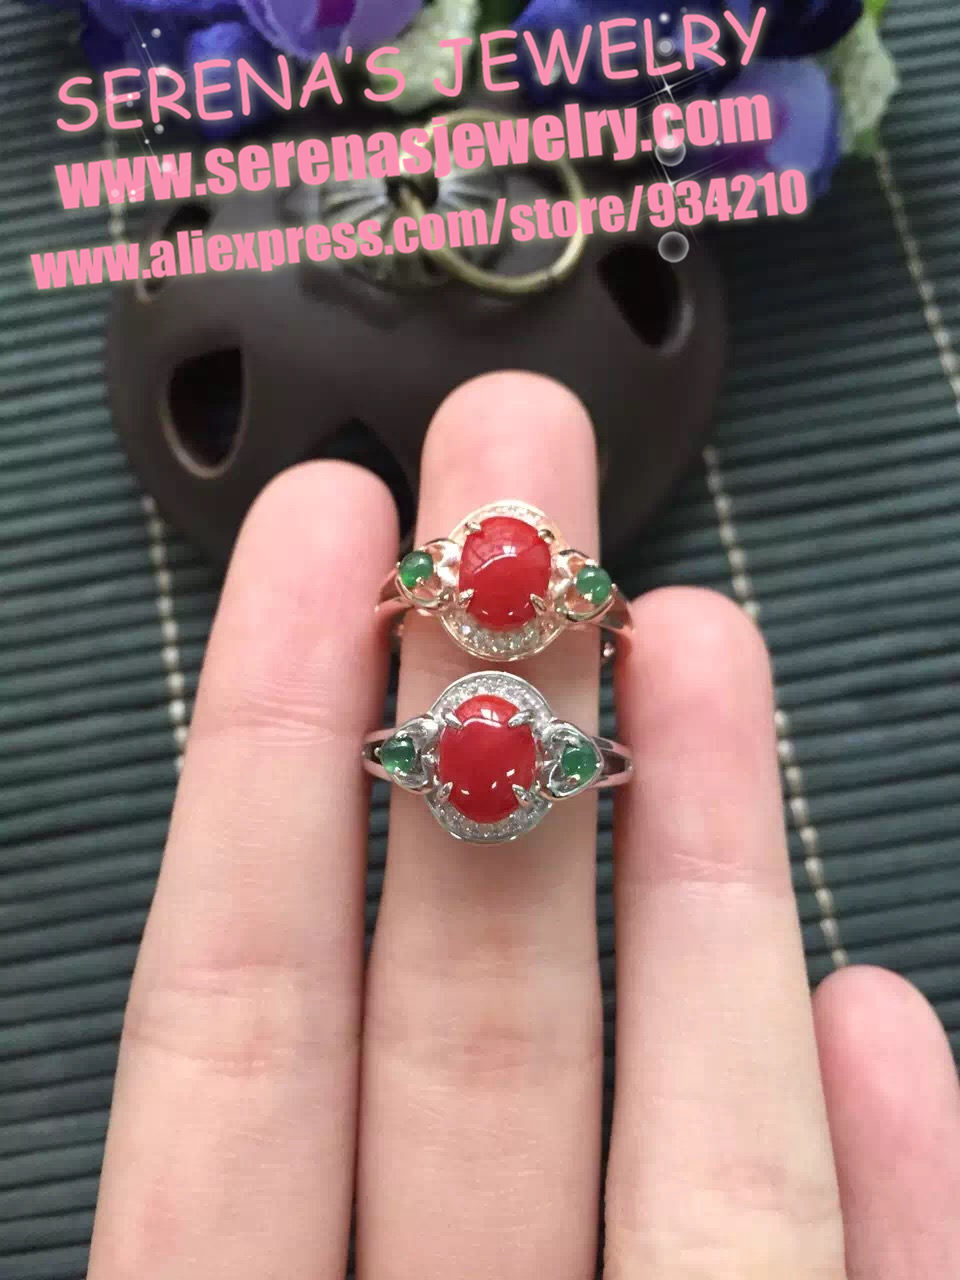 girls gift mum birthday present real 925 sterling silver natural red coral ring egg surfce 6*8mm fine jewelry